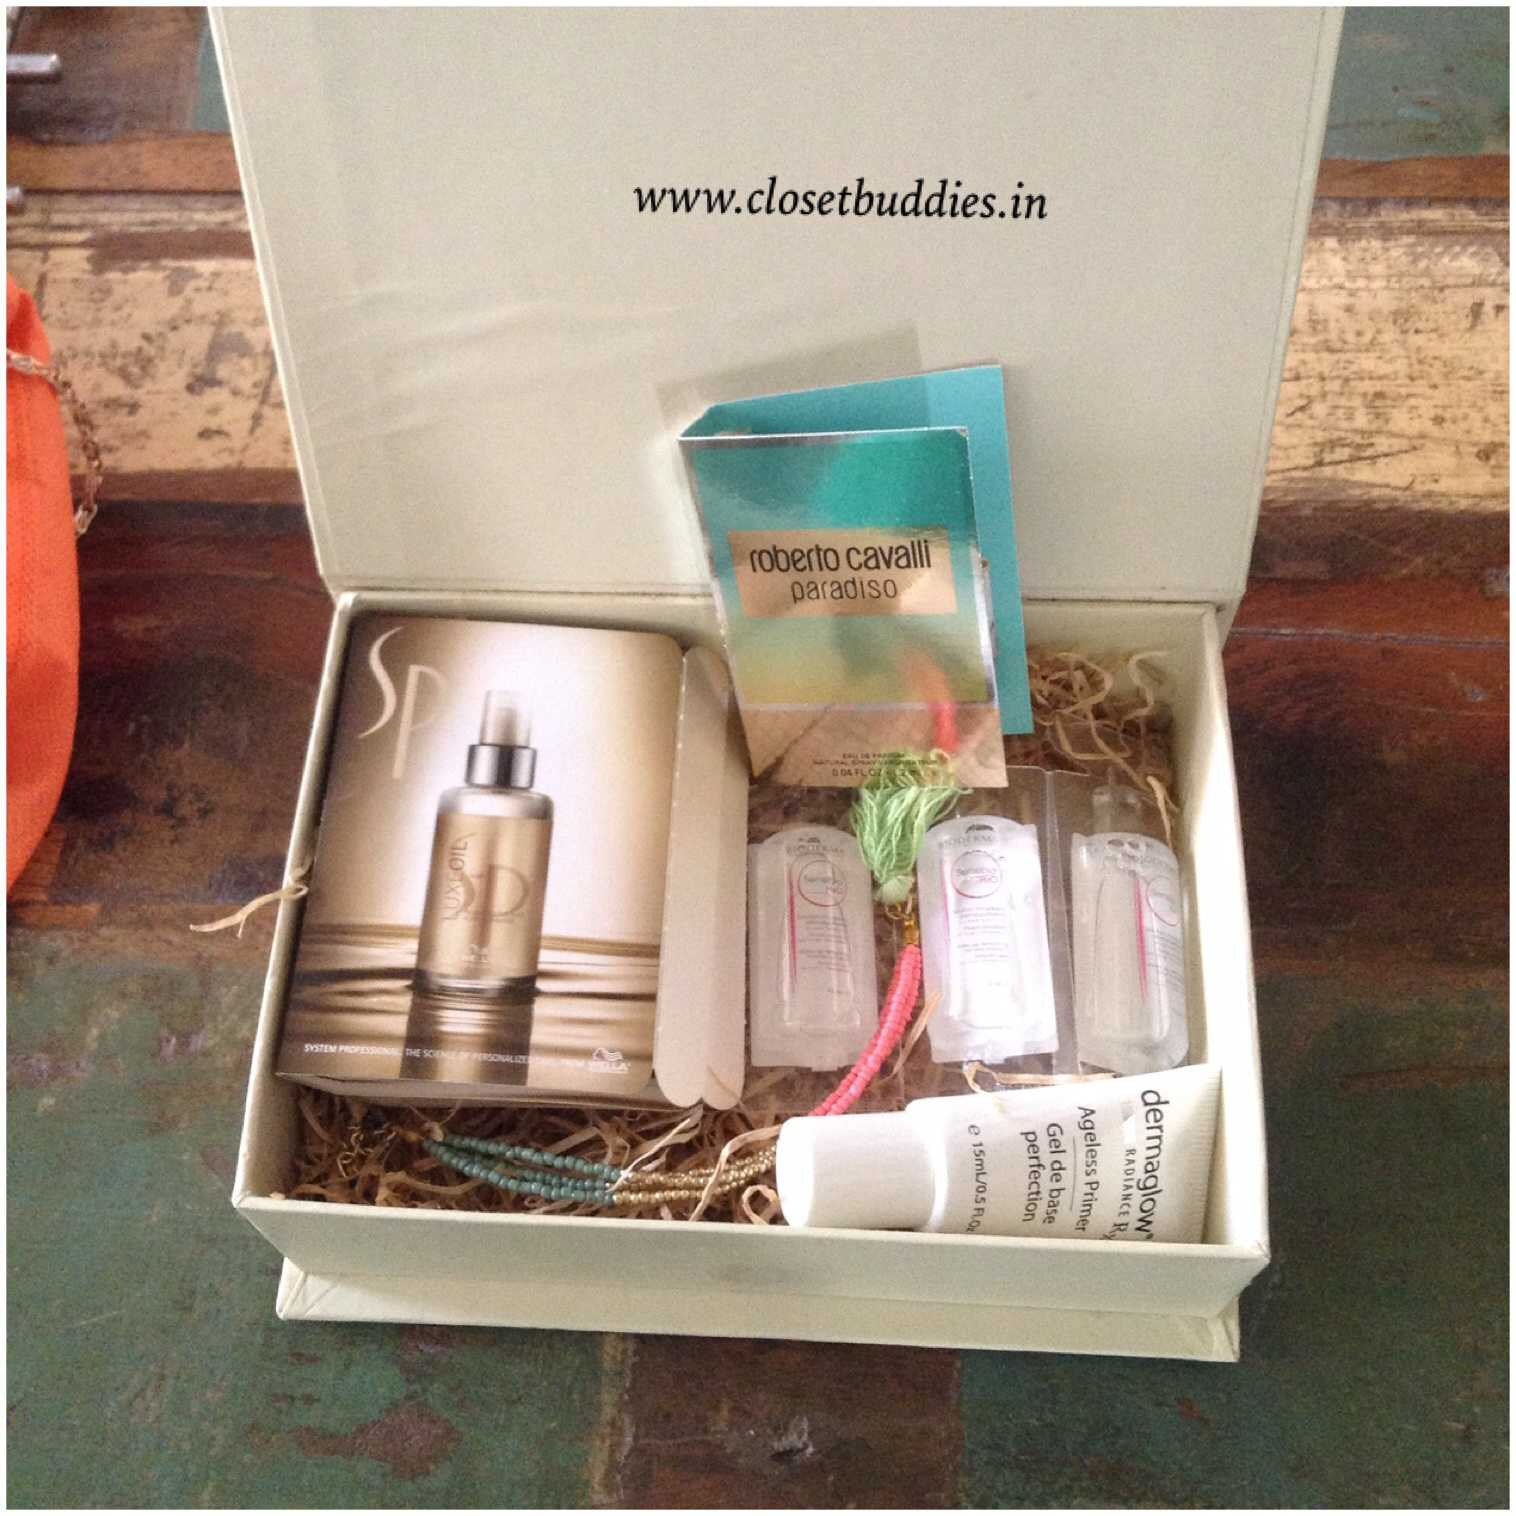 image - My Envy Box- November 2015 Review